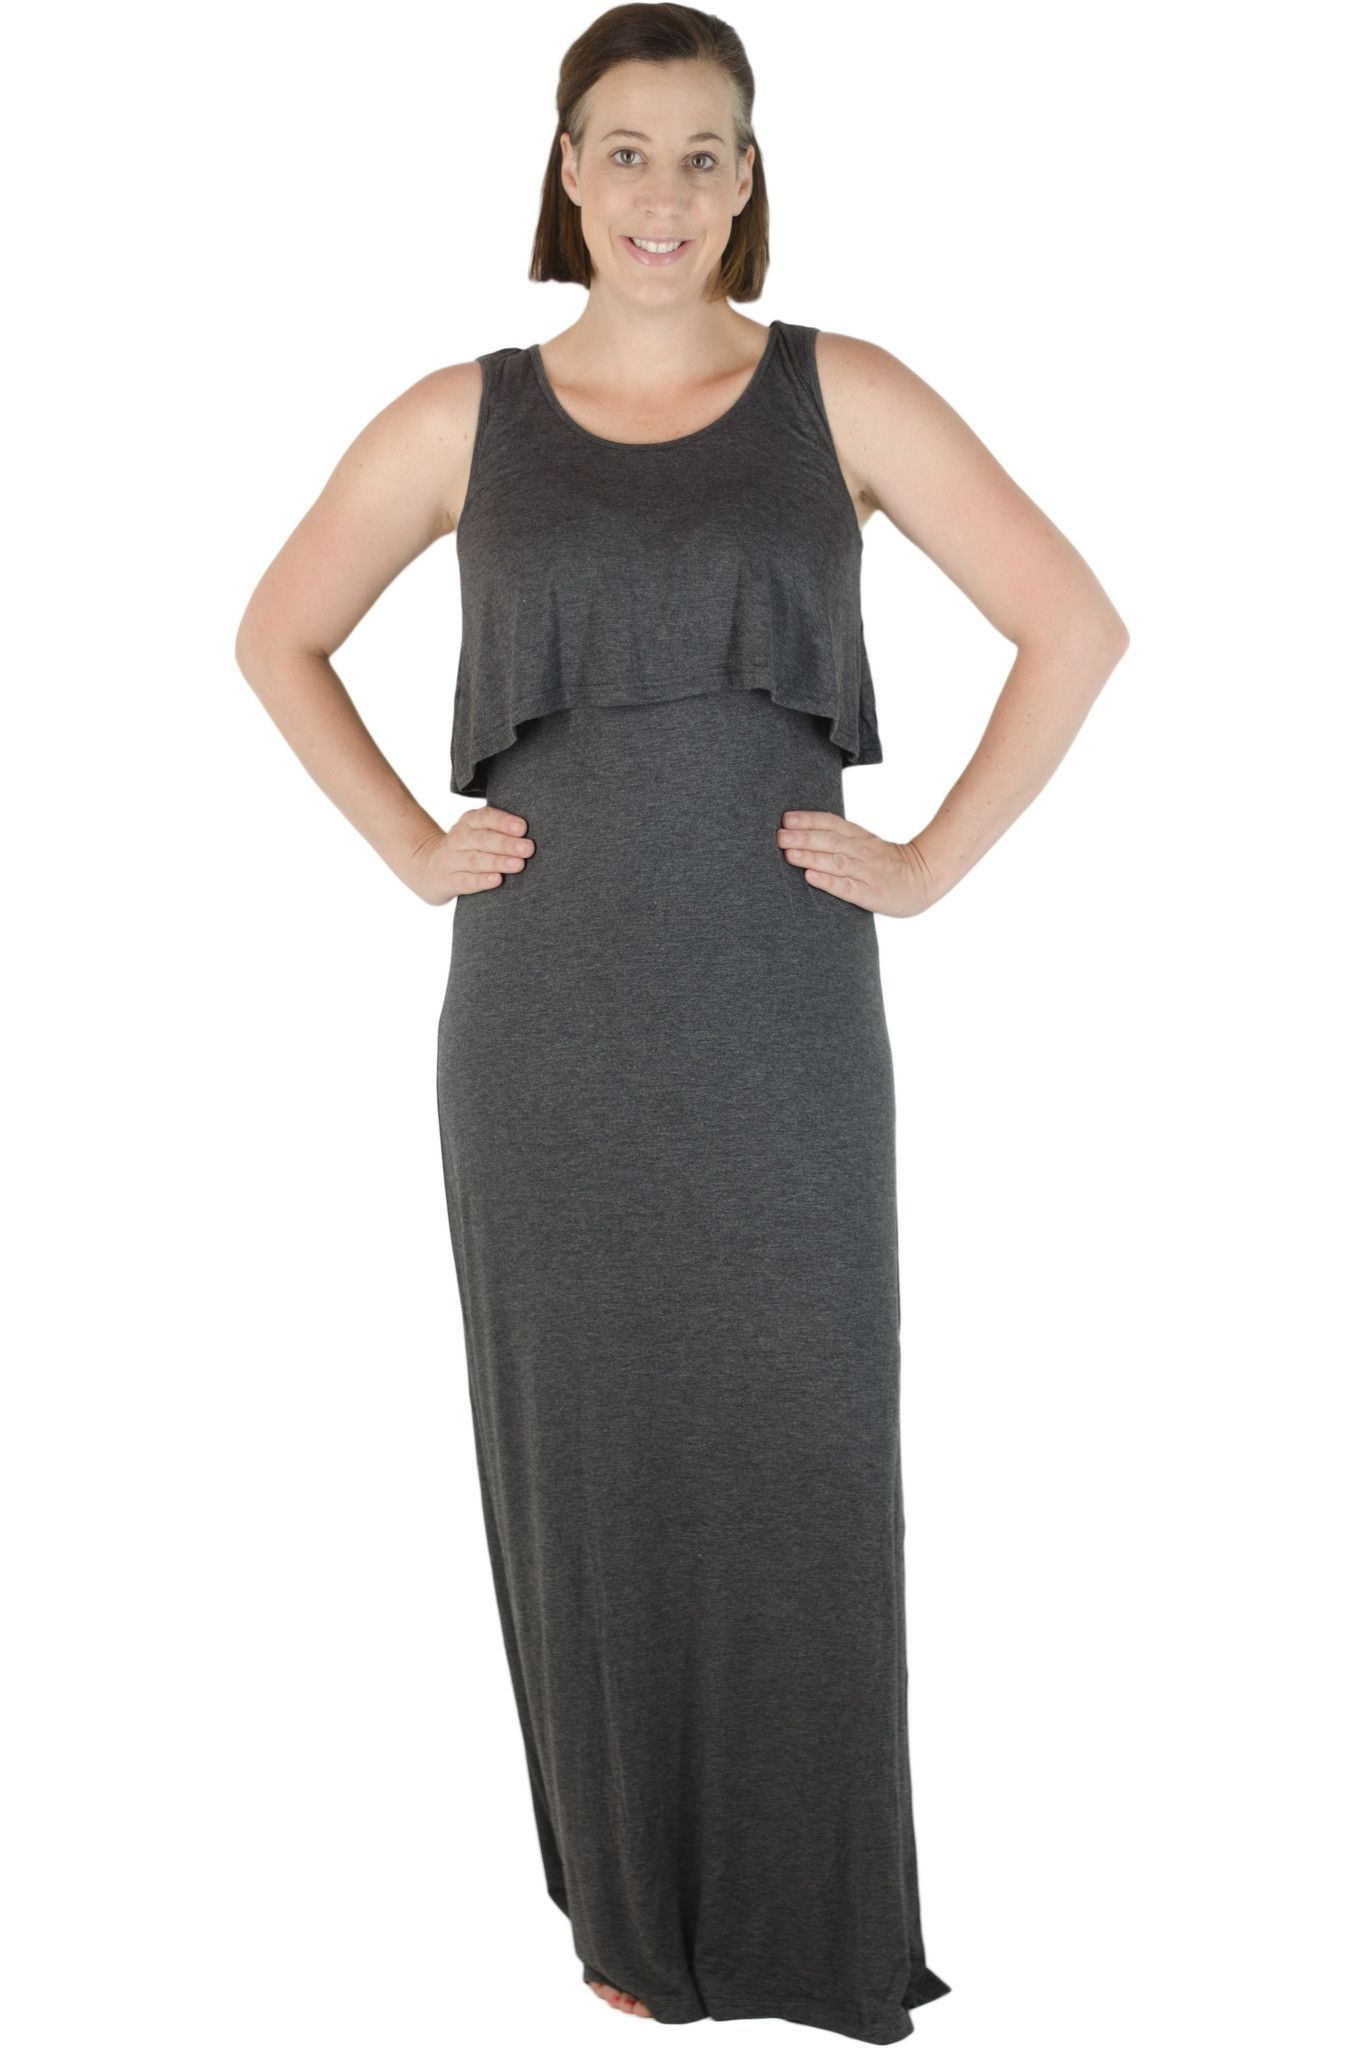 ee39ca16126 Latched Mama Ruffle Front Nursing Maxi Dress